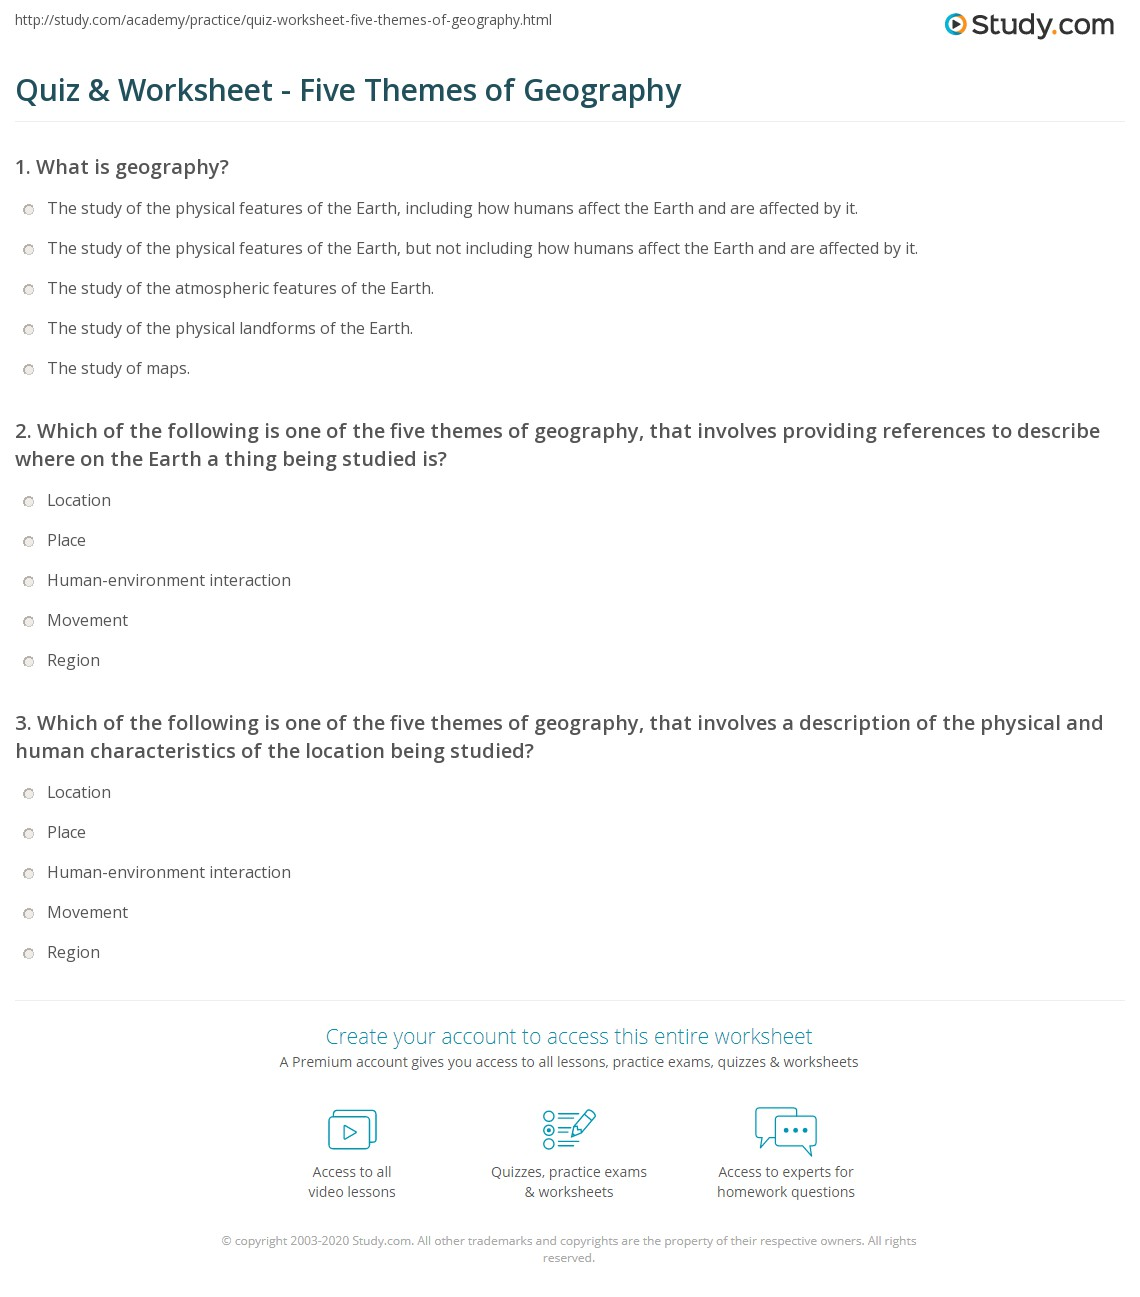 Printables 5 Themes Of Geography Worksheet quiz worksheet five themes of geography study com print what are the worksheet